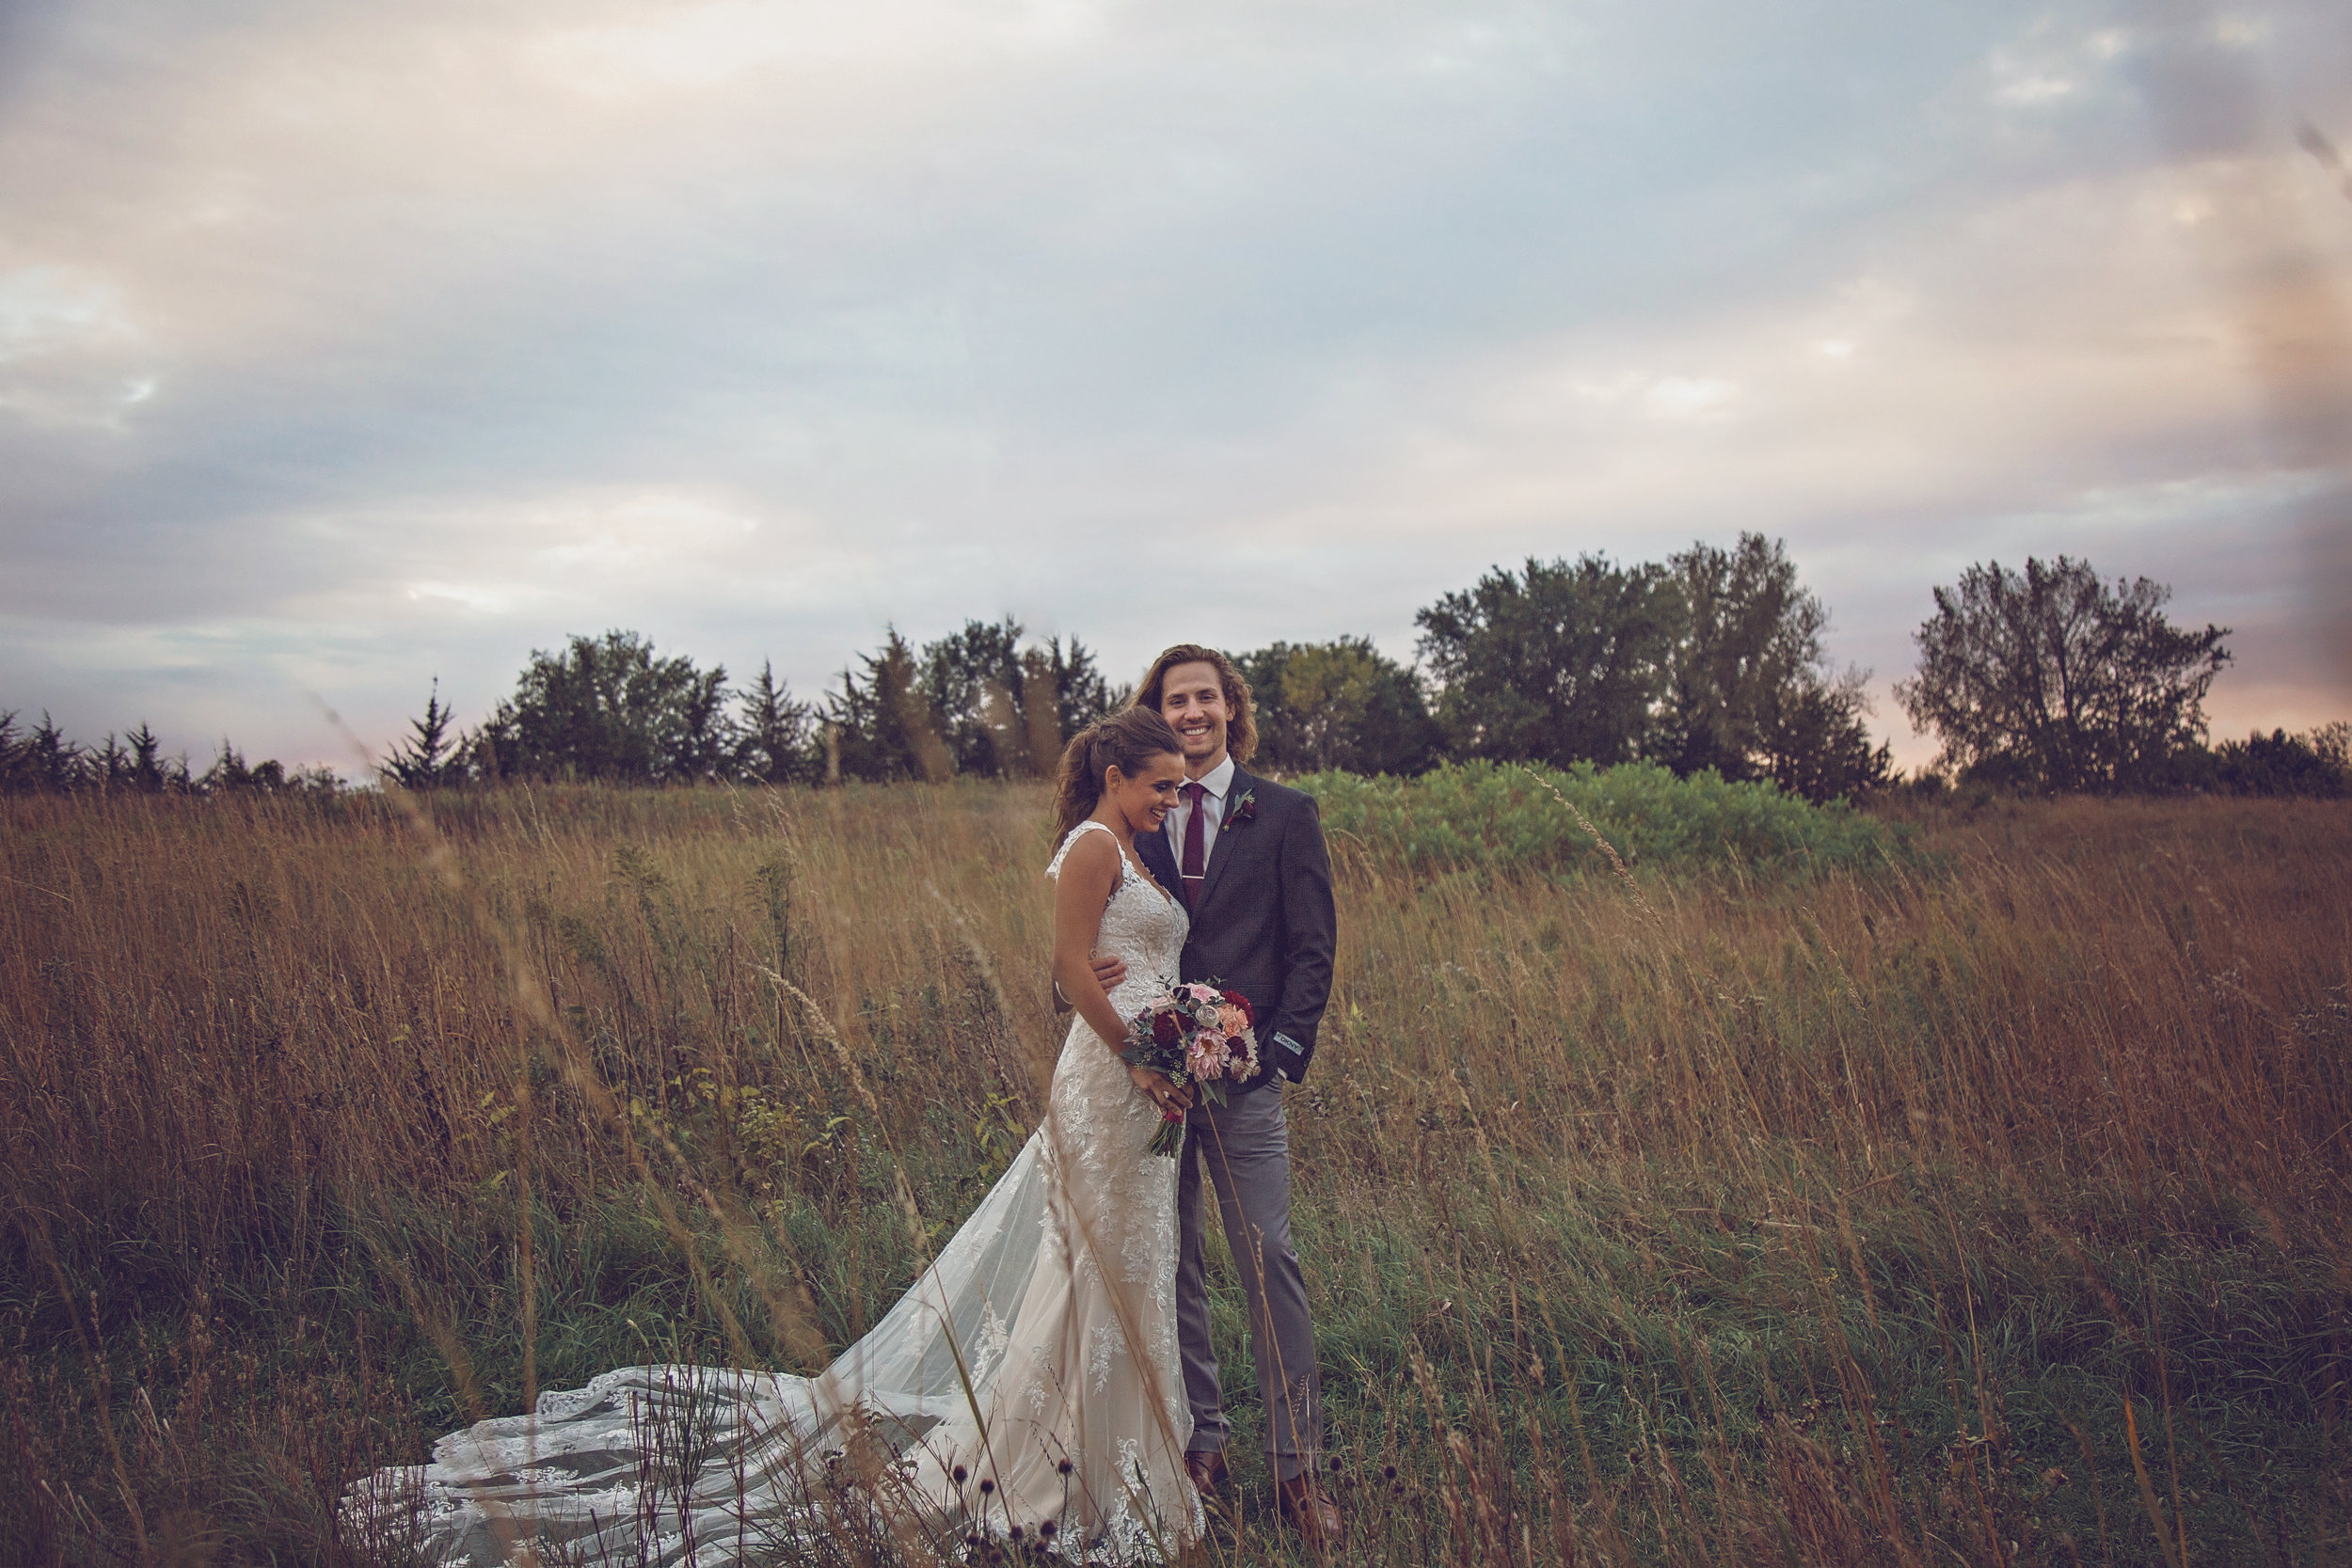 MINNESOTA WEDDING PHOTOGRAPHER   BLOOMING CREATIONS   J. Longs   Inspire bridal boutique   INTUITION WEDDINGS BY ID PHOTOGRAPHY